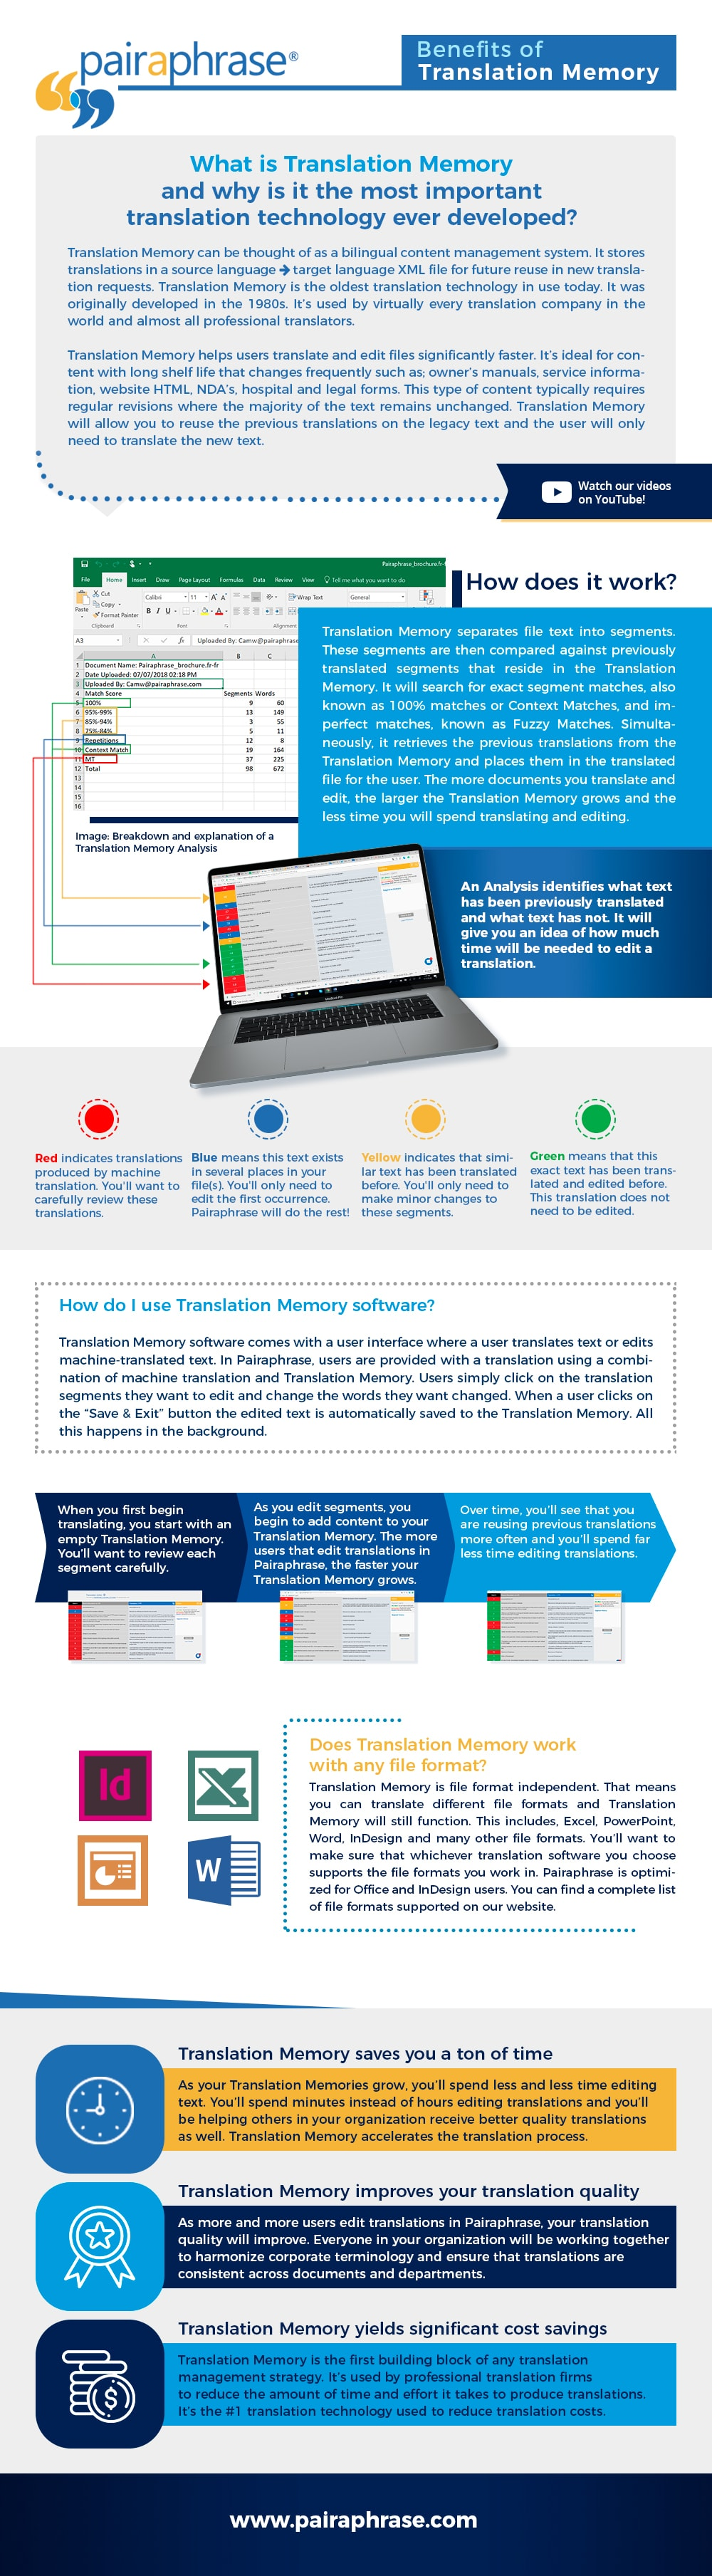 translation memory software infographic